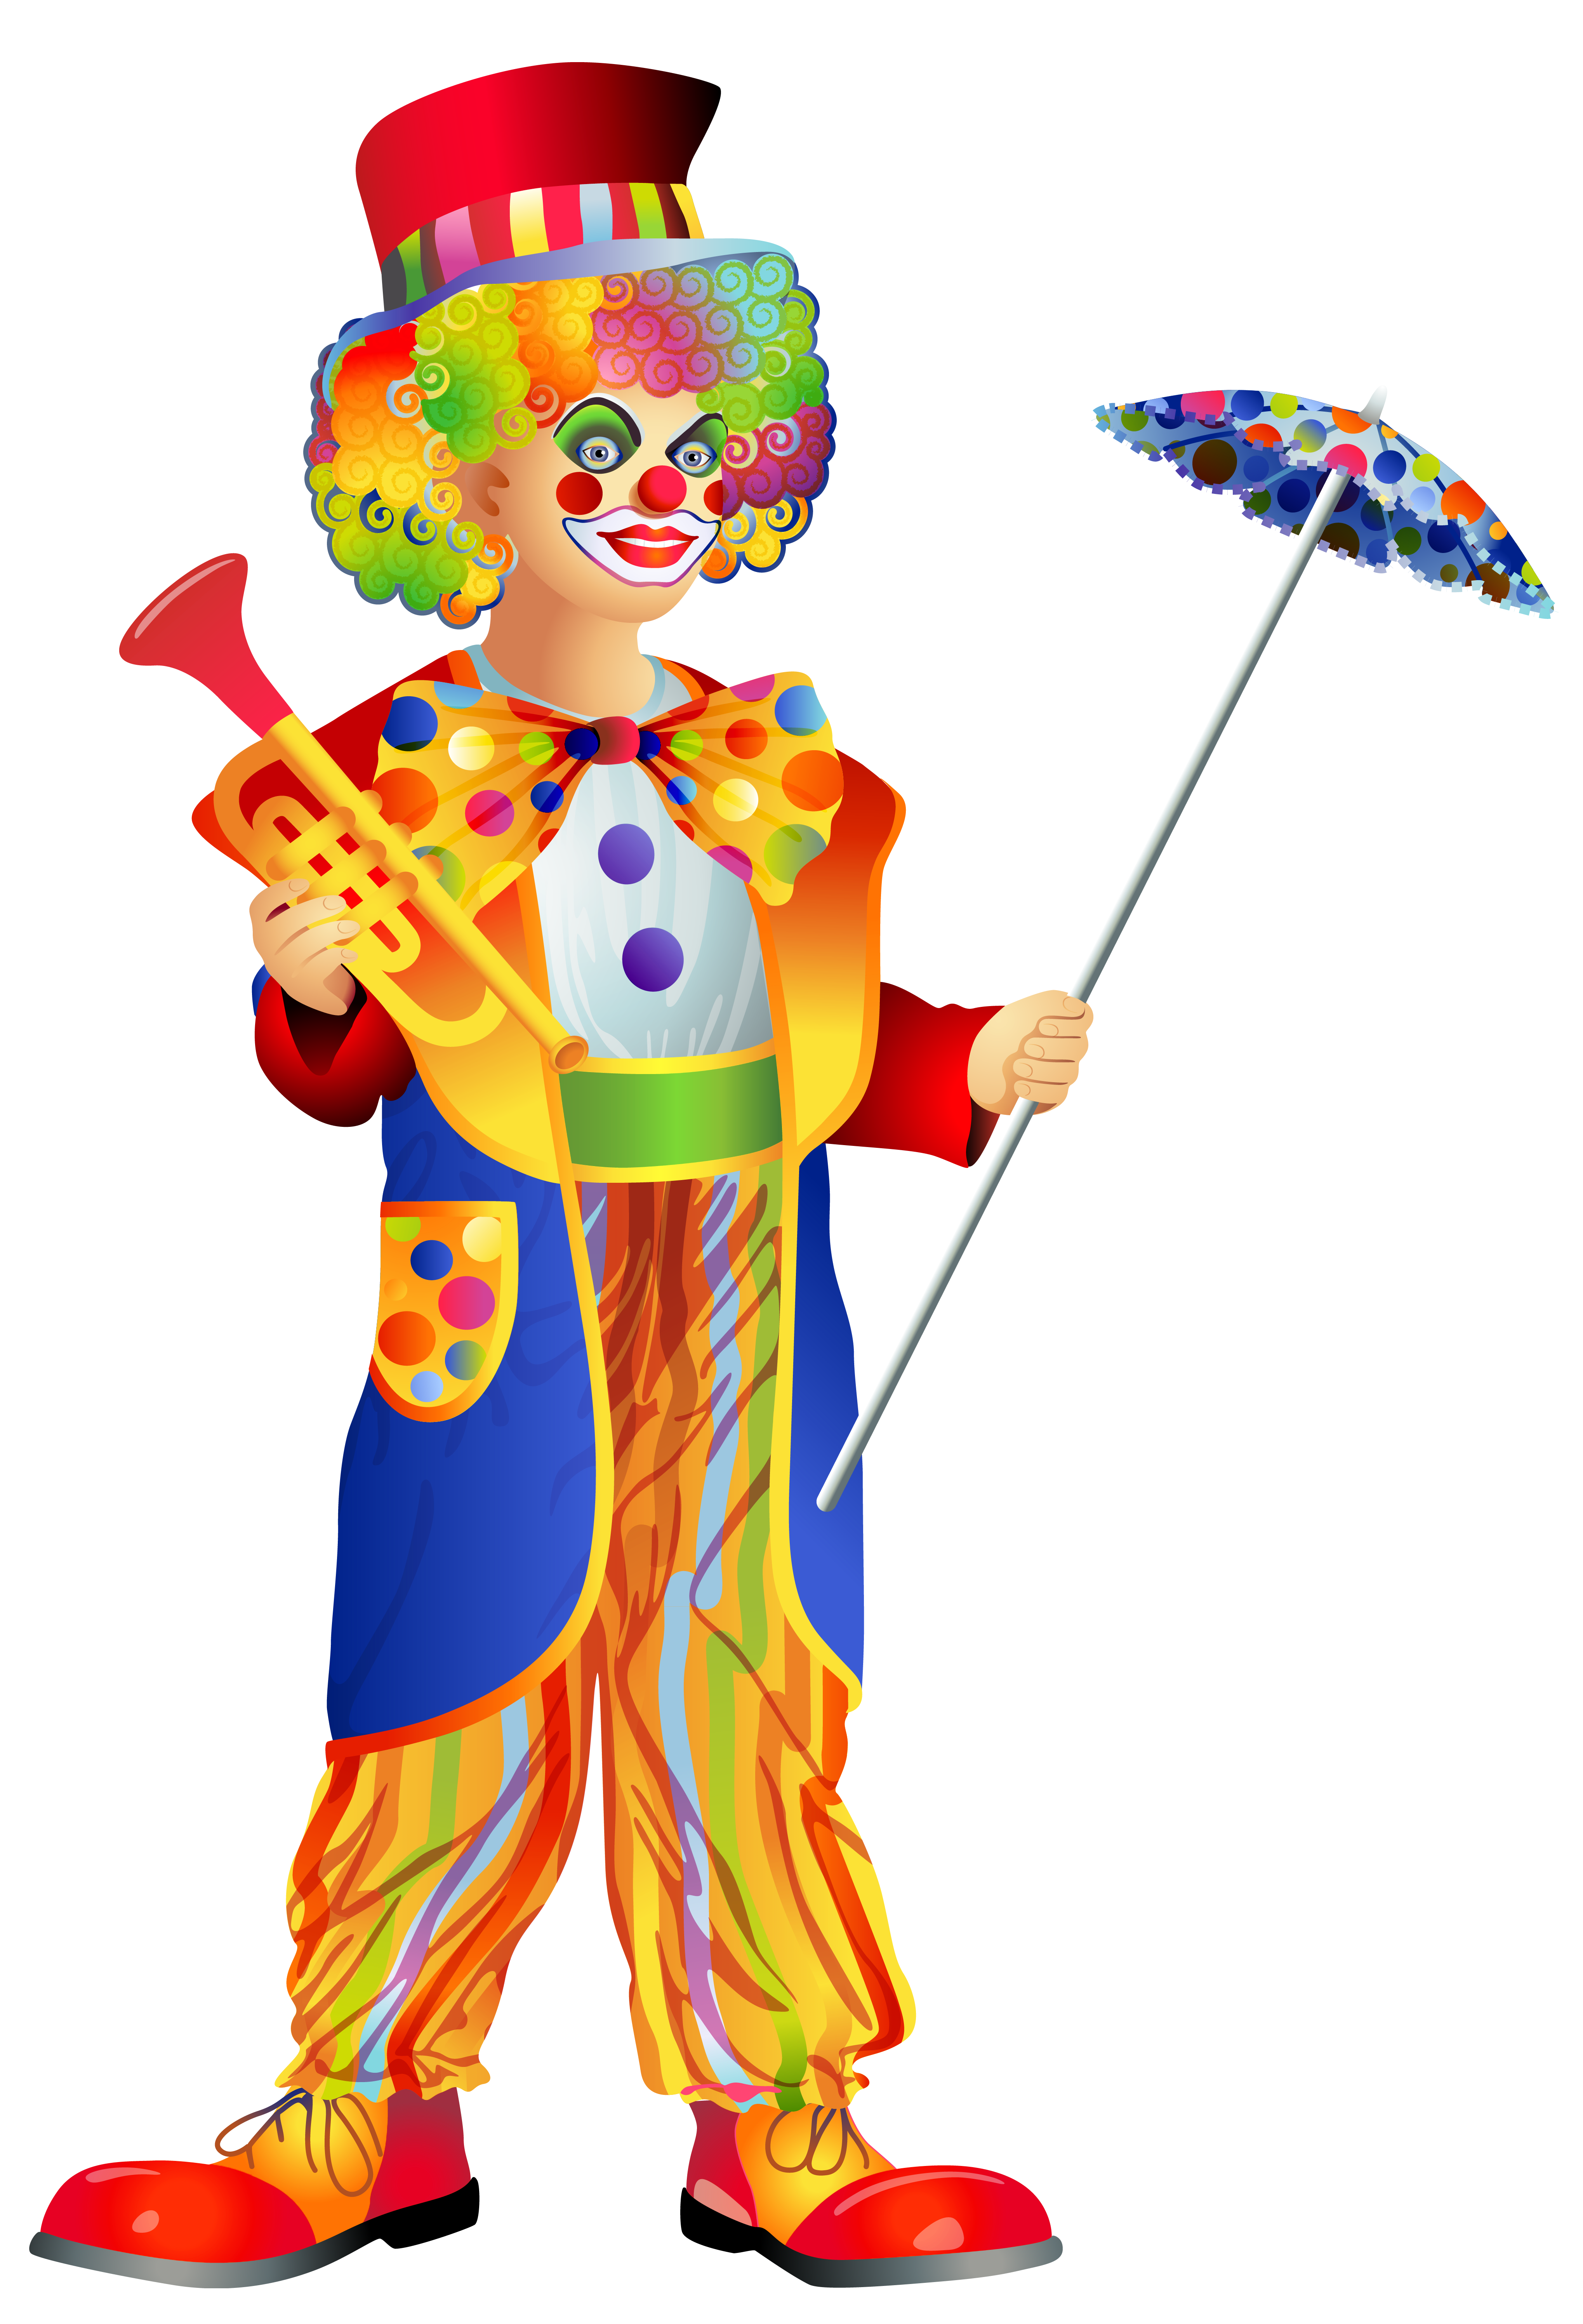 Happy at getdrawings com. Clown clipart royalty free